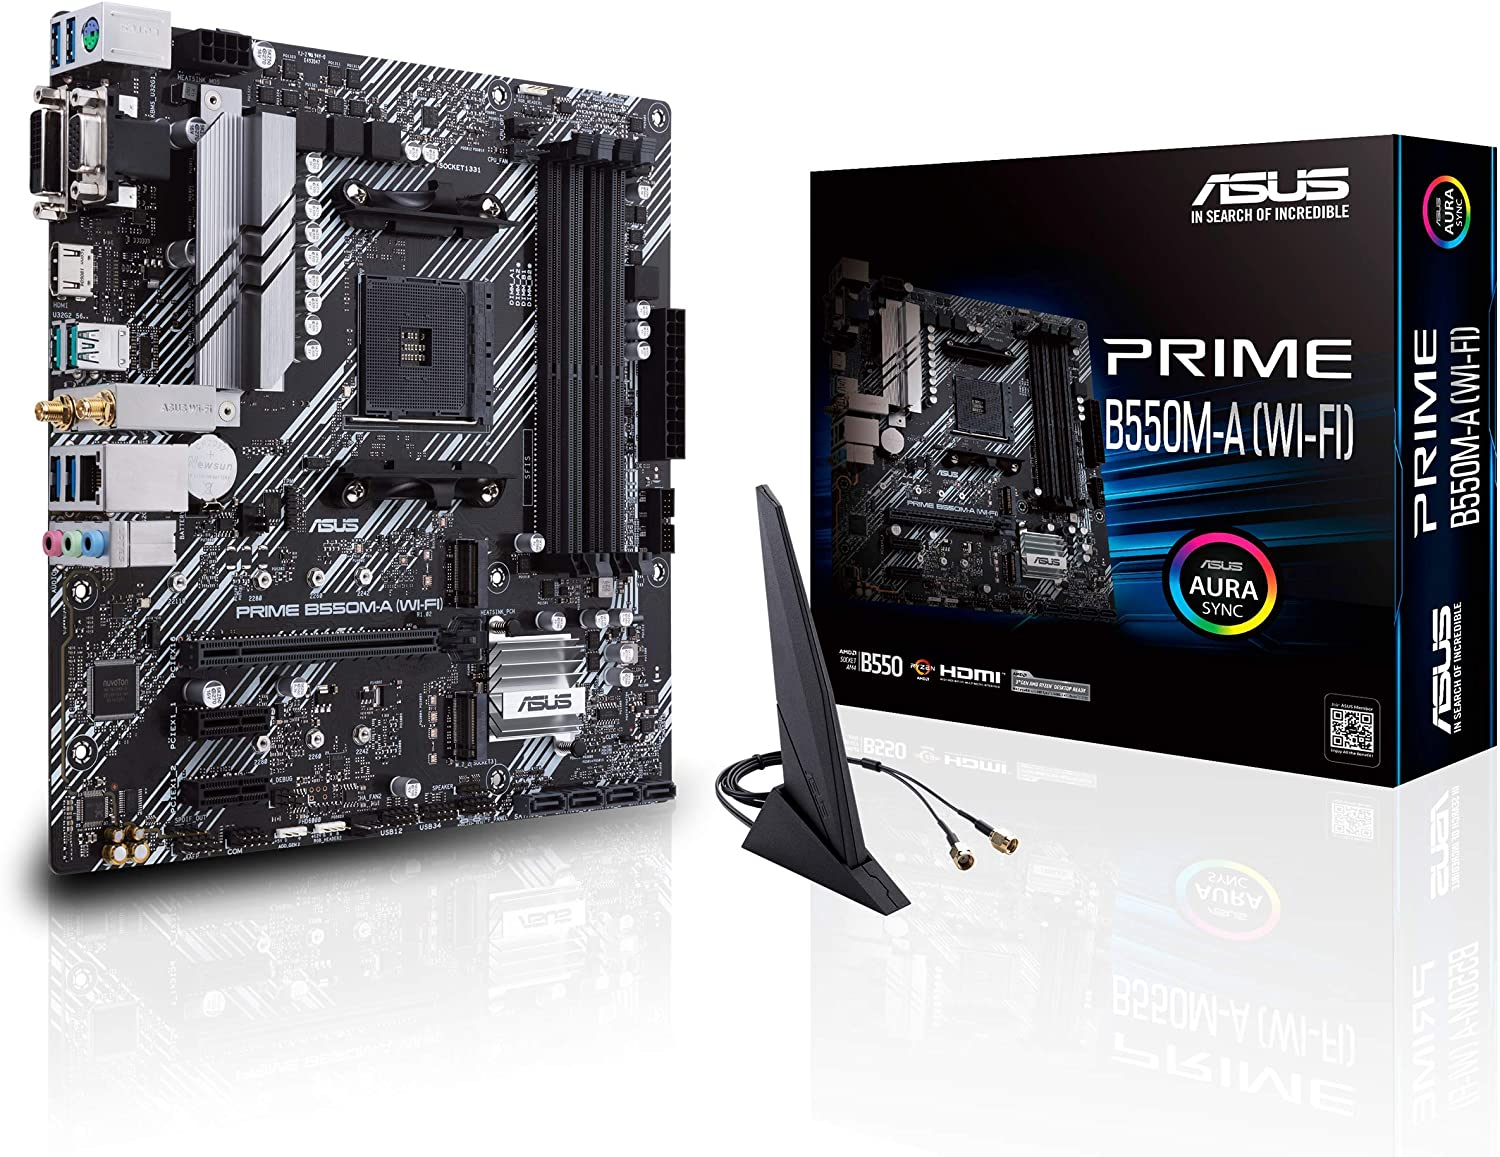 ASUS Prime B550M-A WiFi AMD AM4 Micro ATX Motherboard